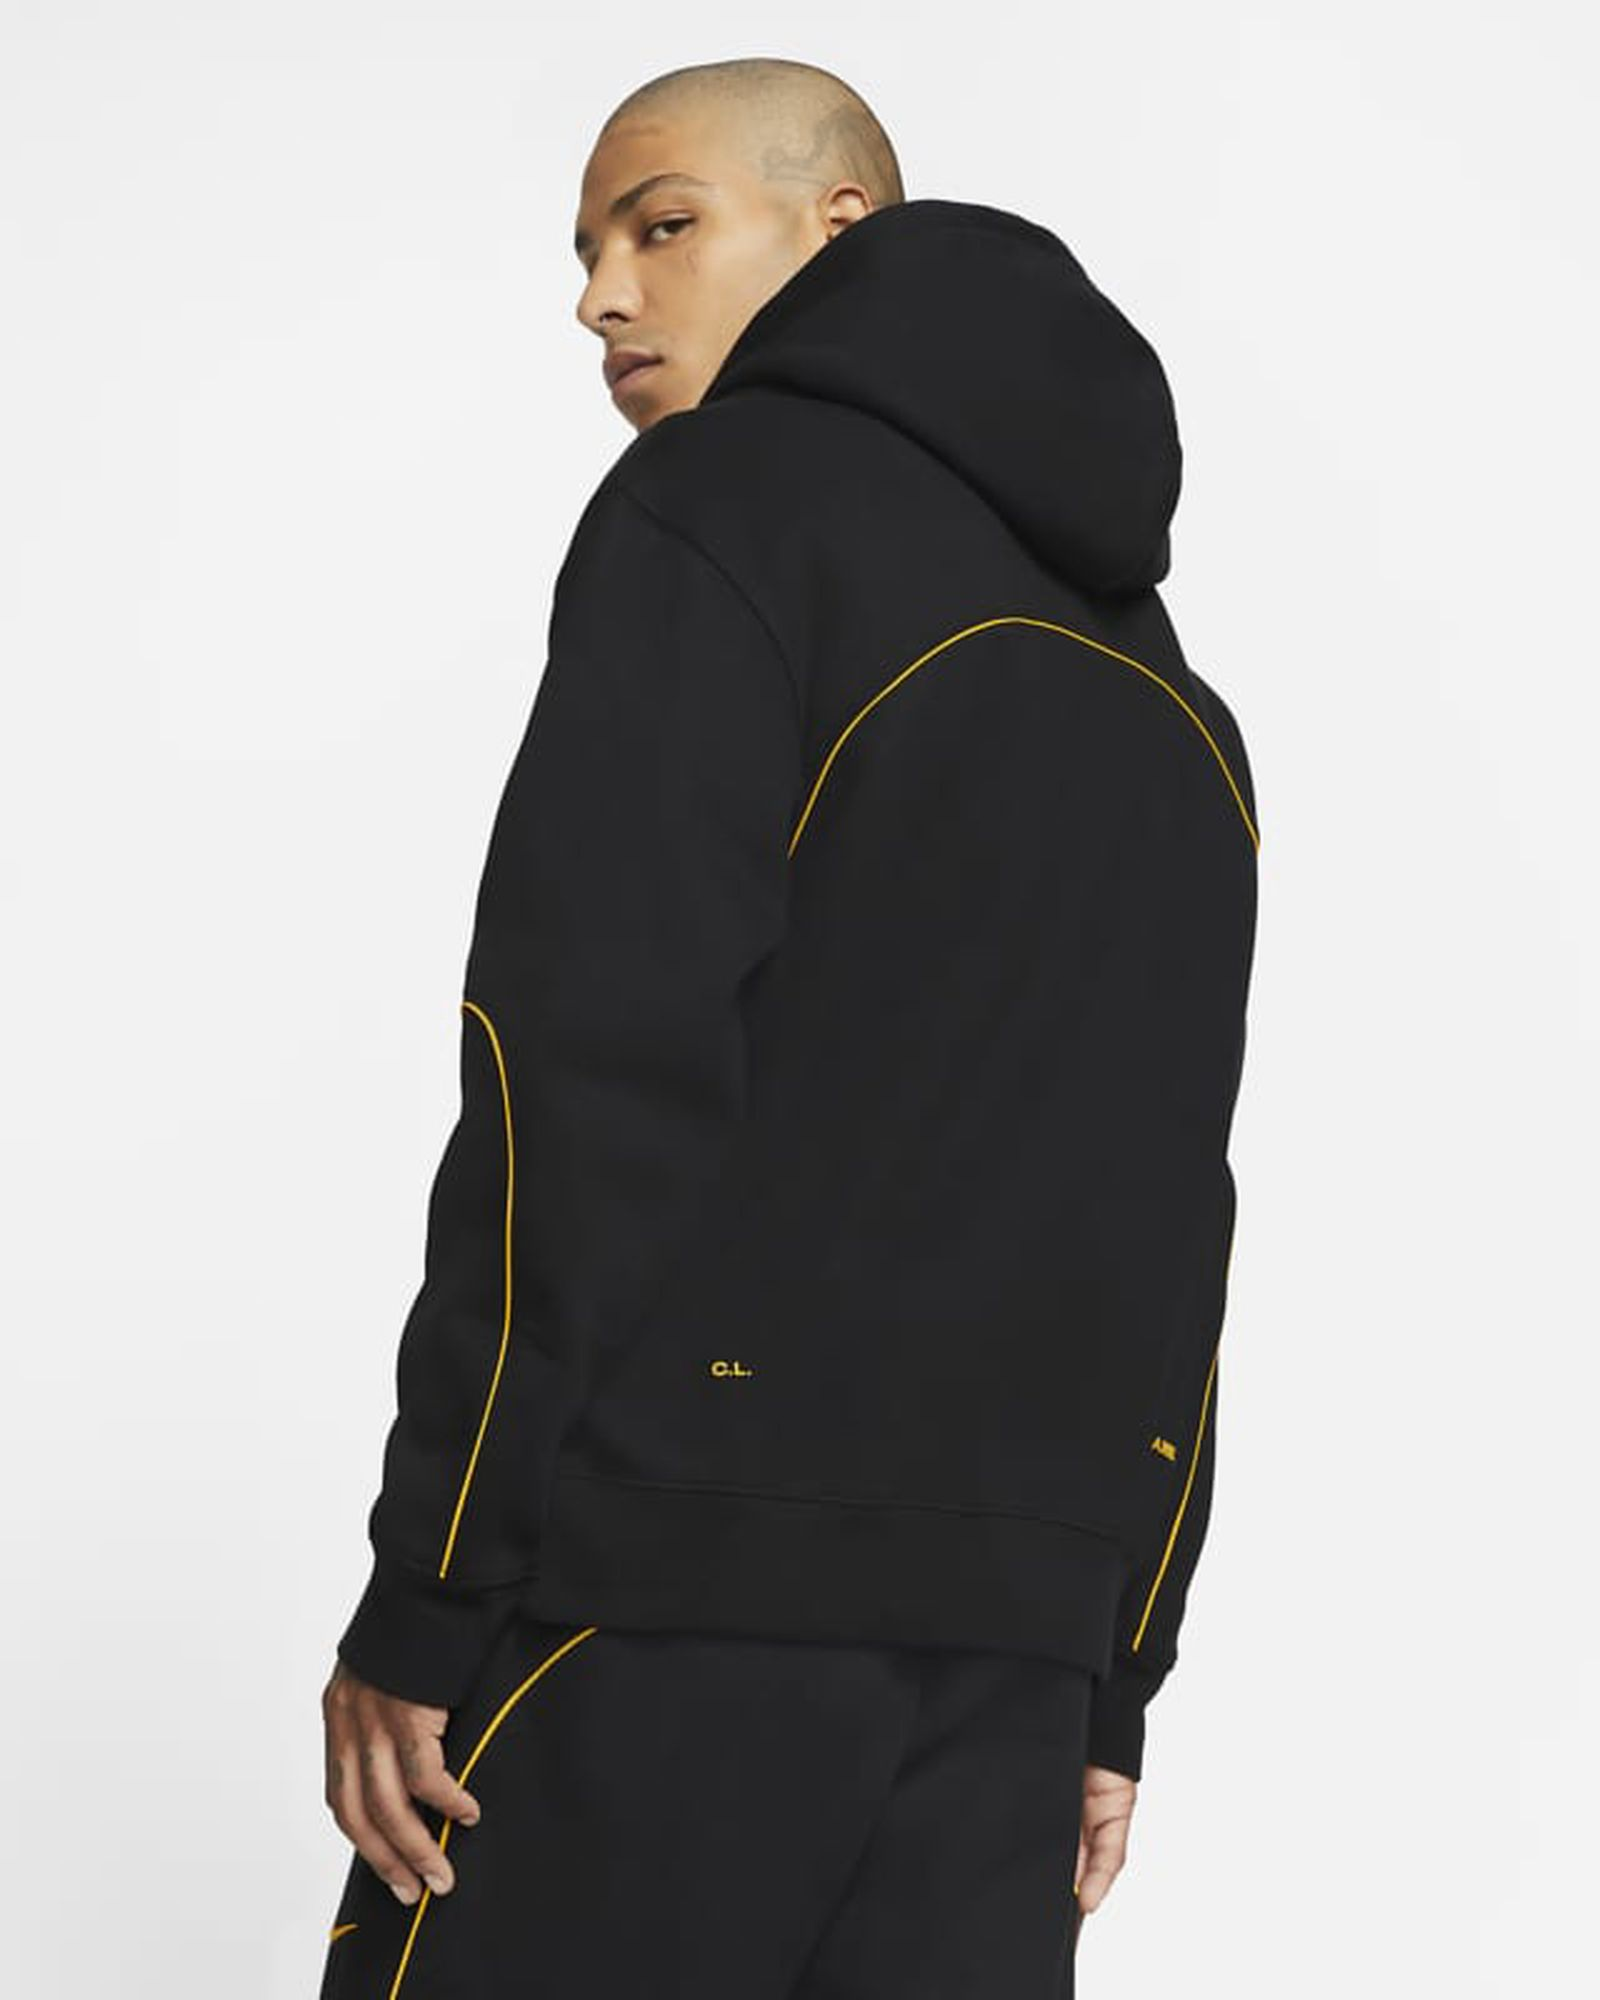 drake-nike-nocta-collection-release-date-price-02